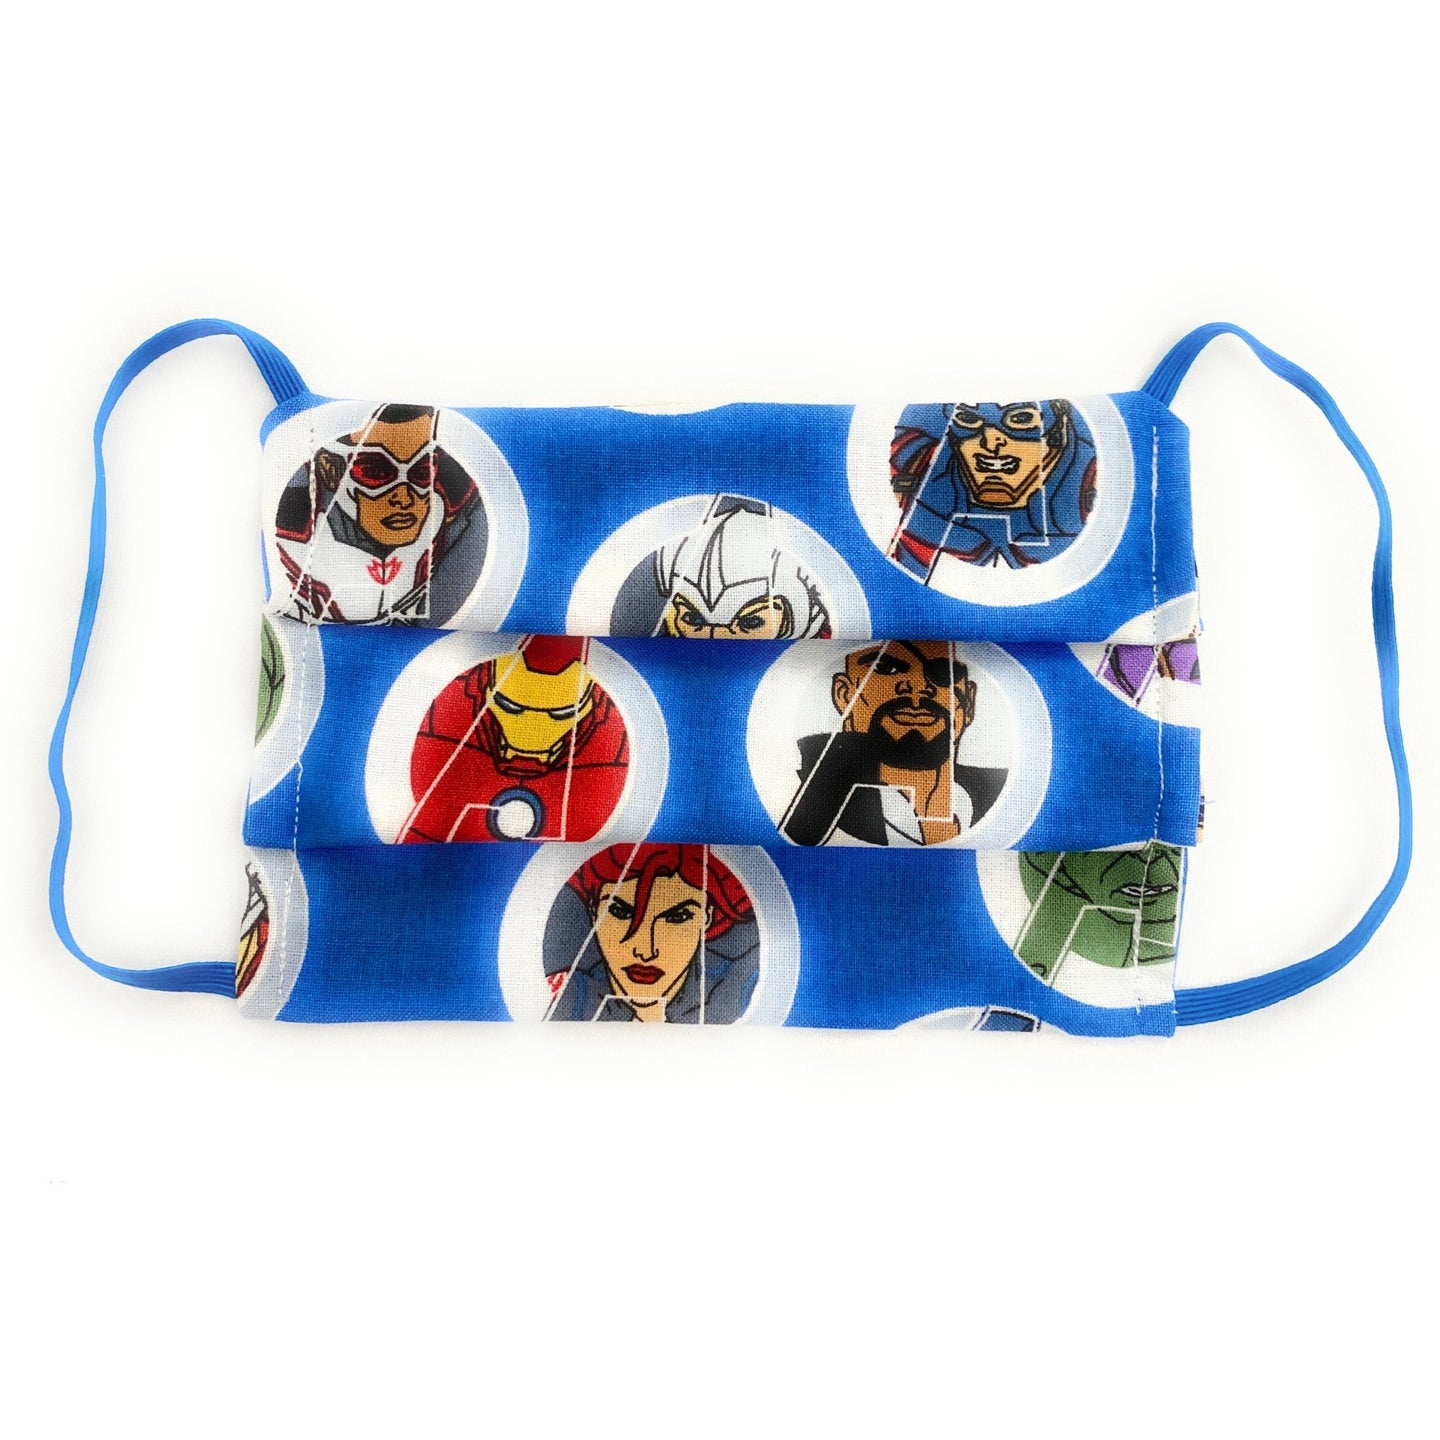 MCU Marcels Avengers Face Mask 100% Cotton Double Layer, PM2.5 Filter Included